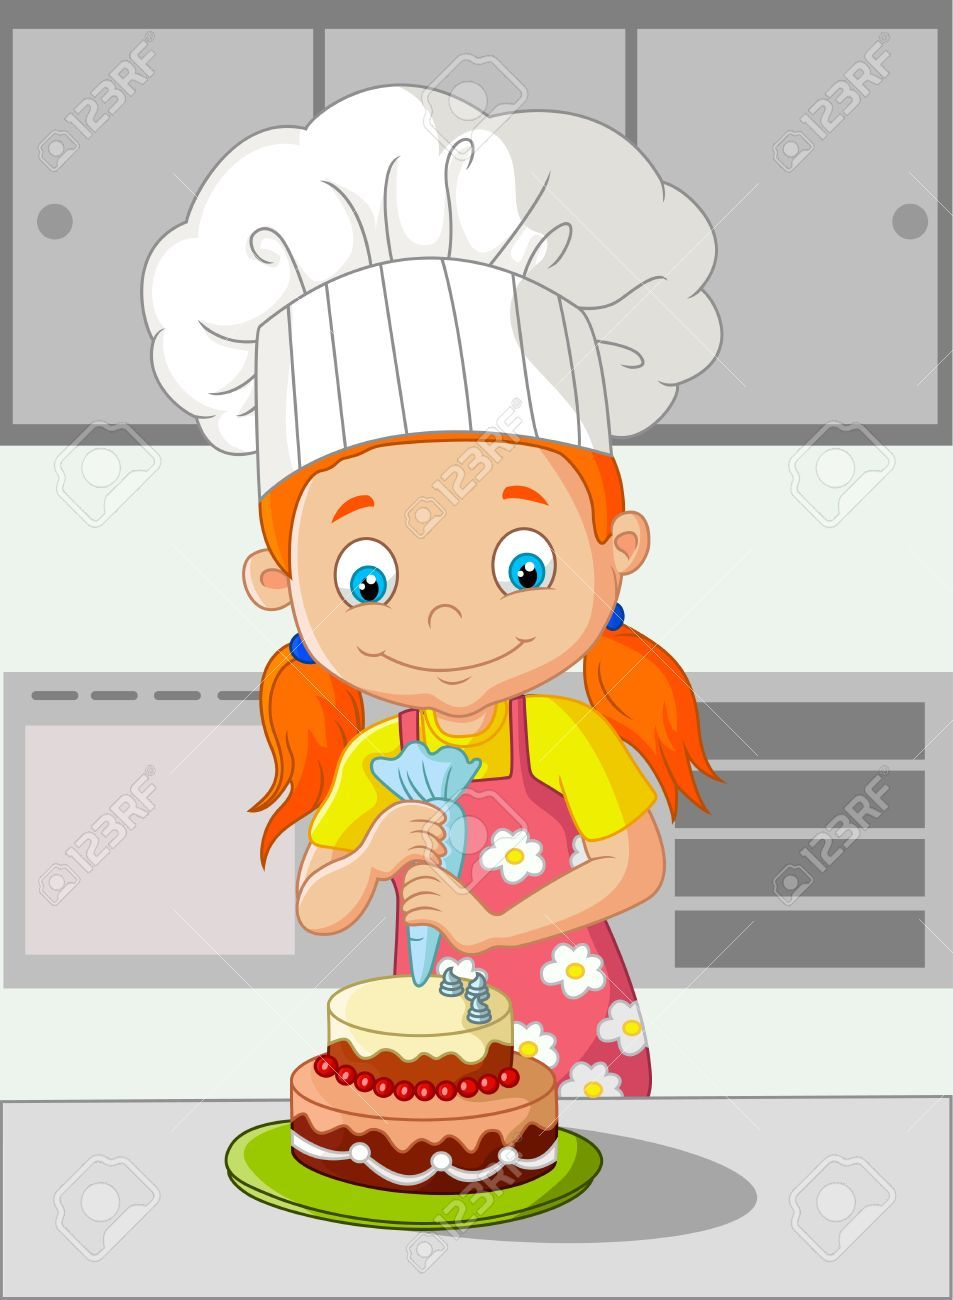 Bake cake clipart picture royalty free Bake cake clipart 2 » Clipart Portal picture royalty free